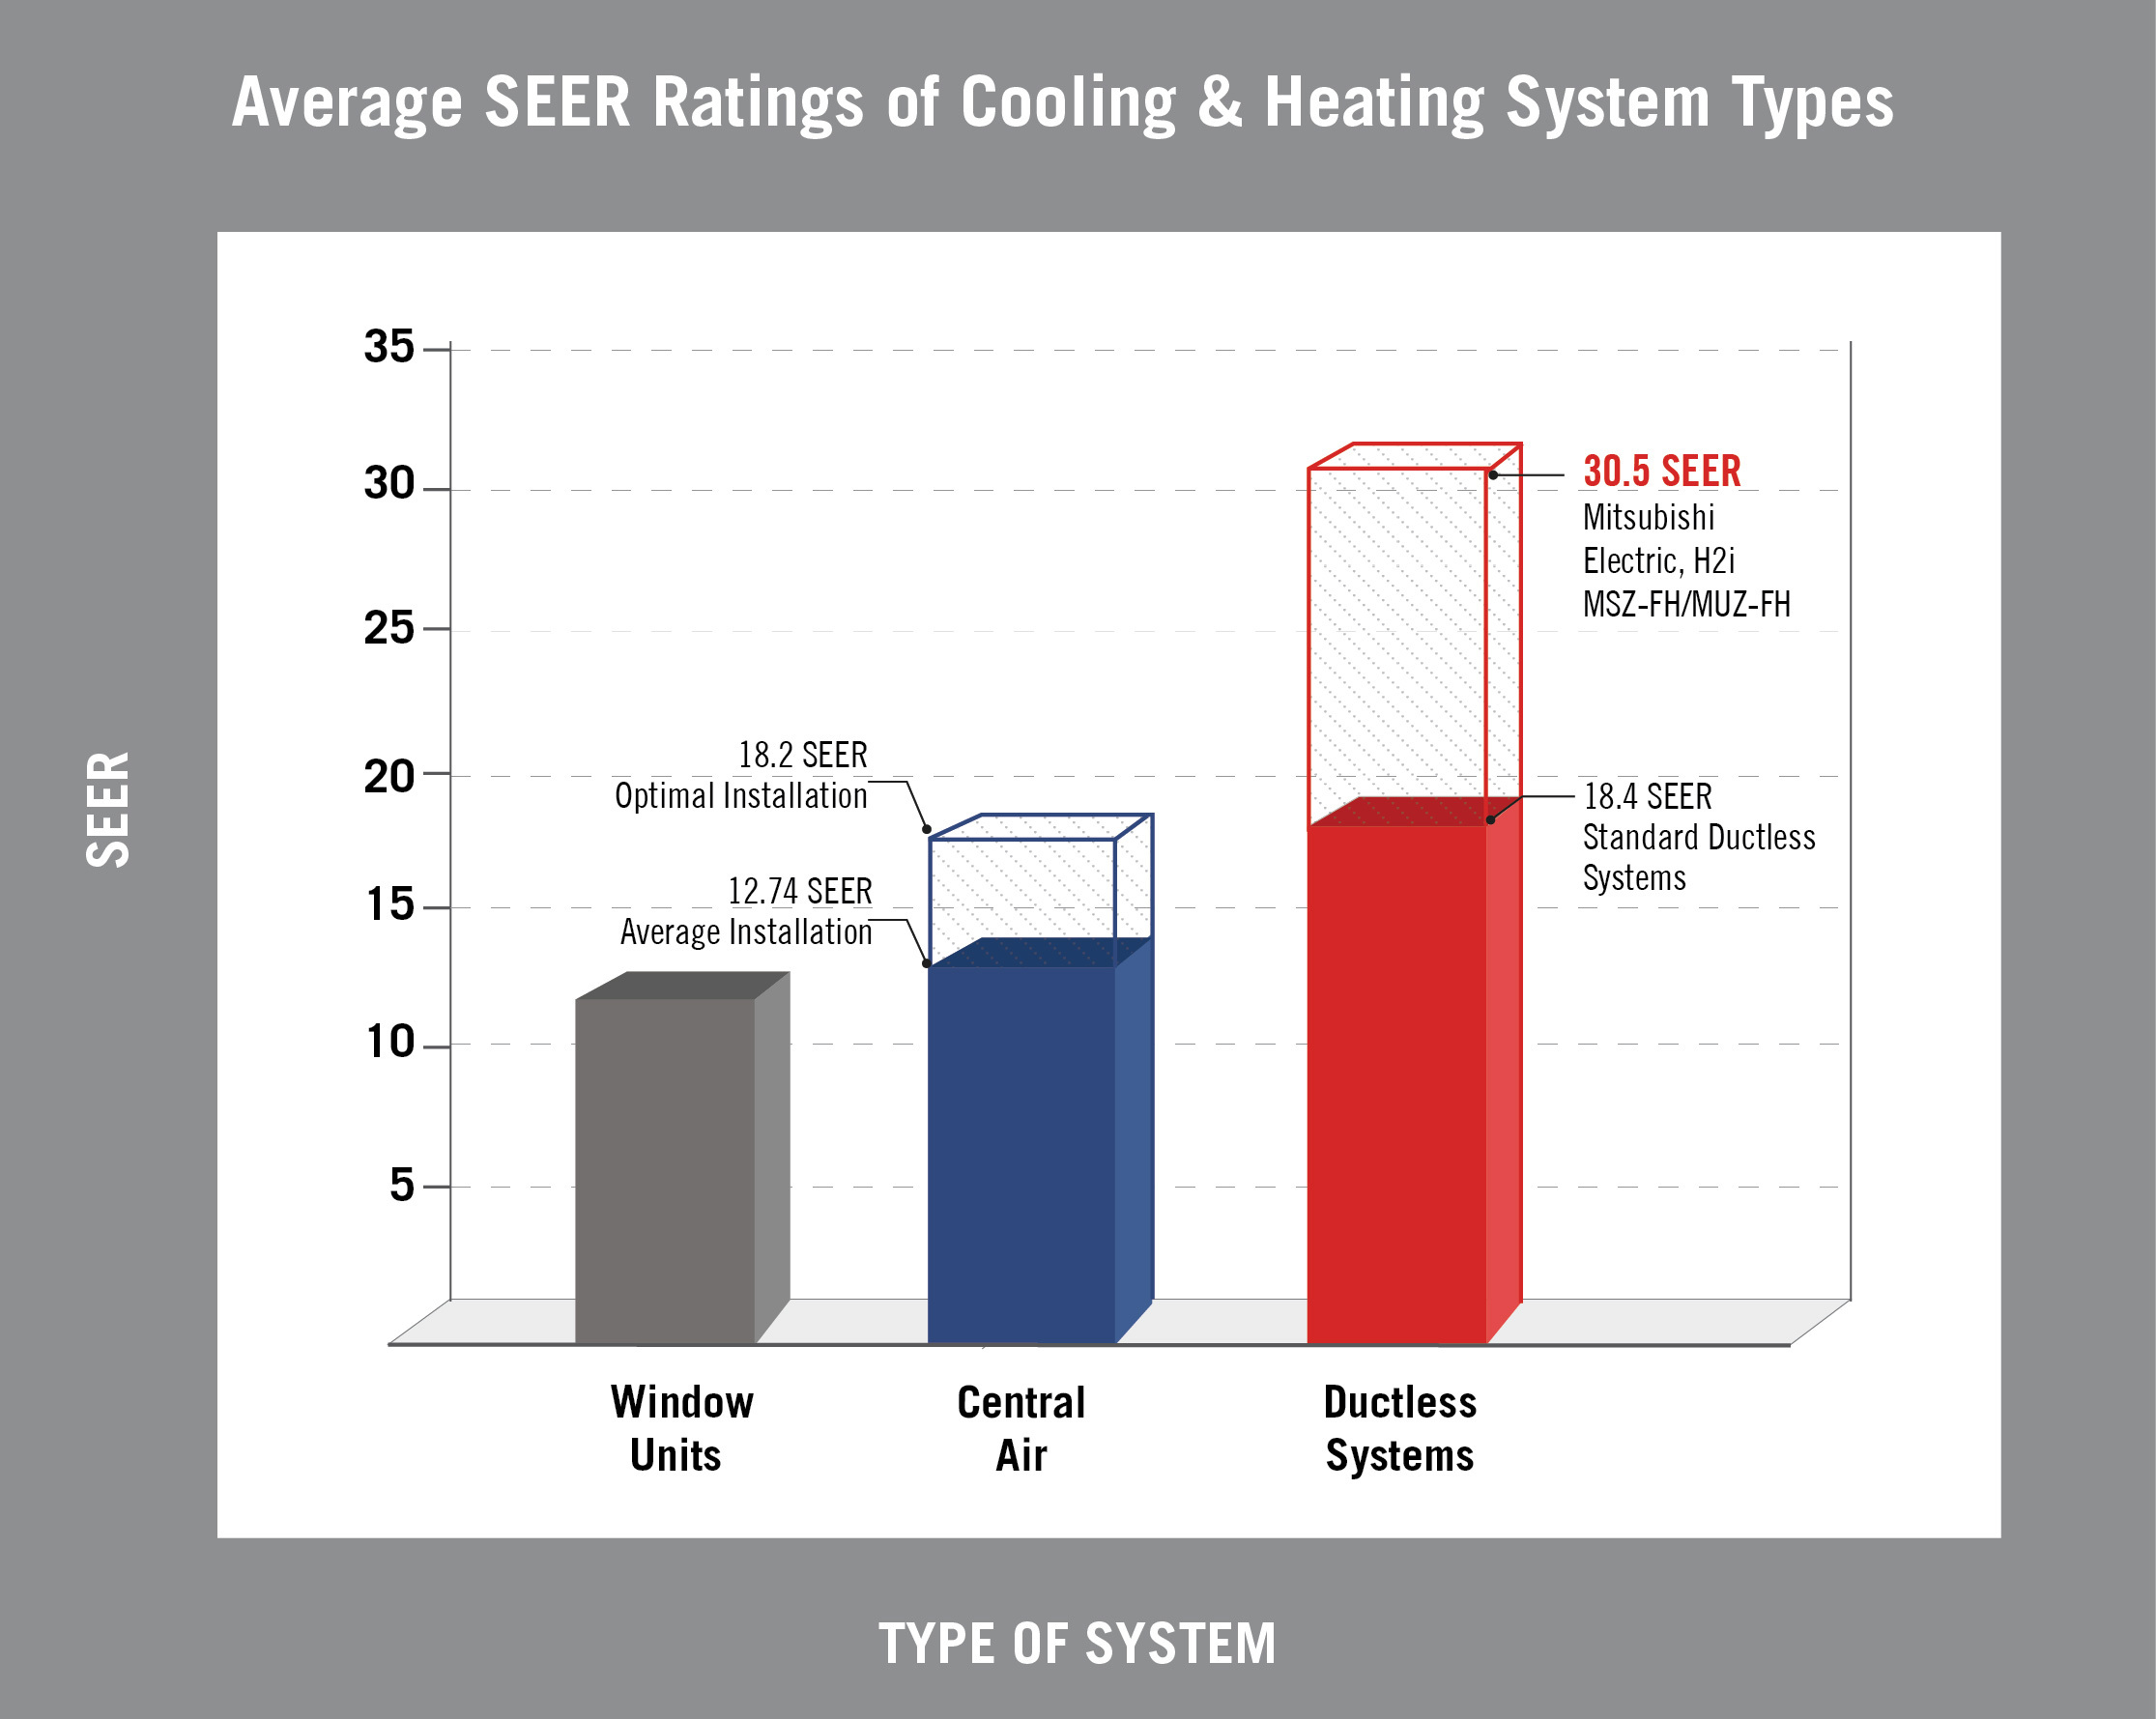 Source: Optimal SEER for central air and Average Installation SEER for ductless systems calculated using products from the ACH&R News 2013 Residential Cooling Showcase. Average window unit SEER calculated using products from the ENERGY STAR 2014 Most Efficient Products list. Average Installation SEER for central air calculated by deducting 30 percent for duct loss from optimal average. 30 percent cited by U.S. Dept. of Energy. (Graphic: Business Wire)